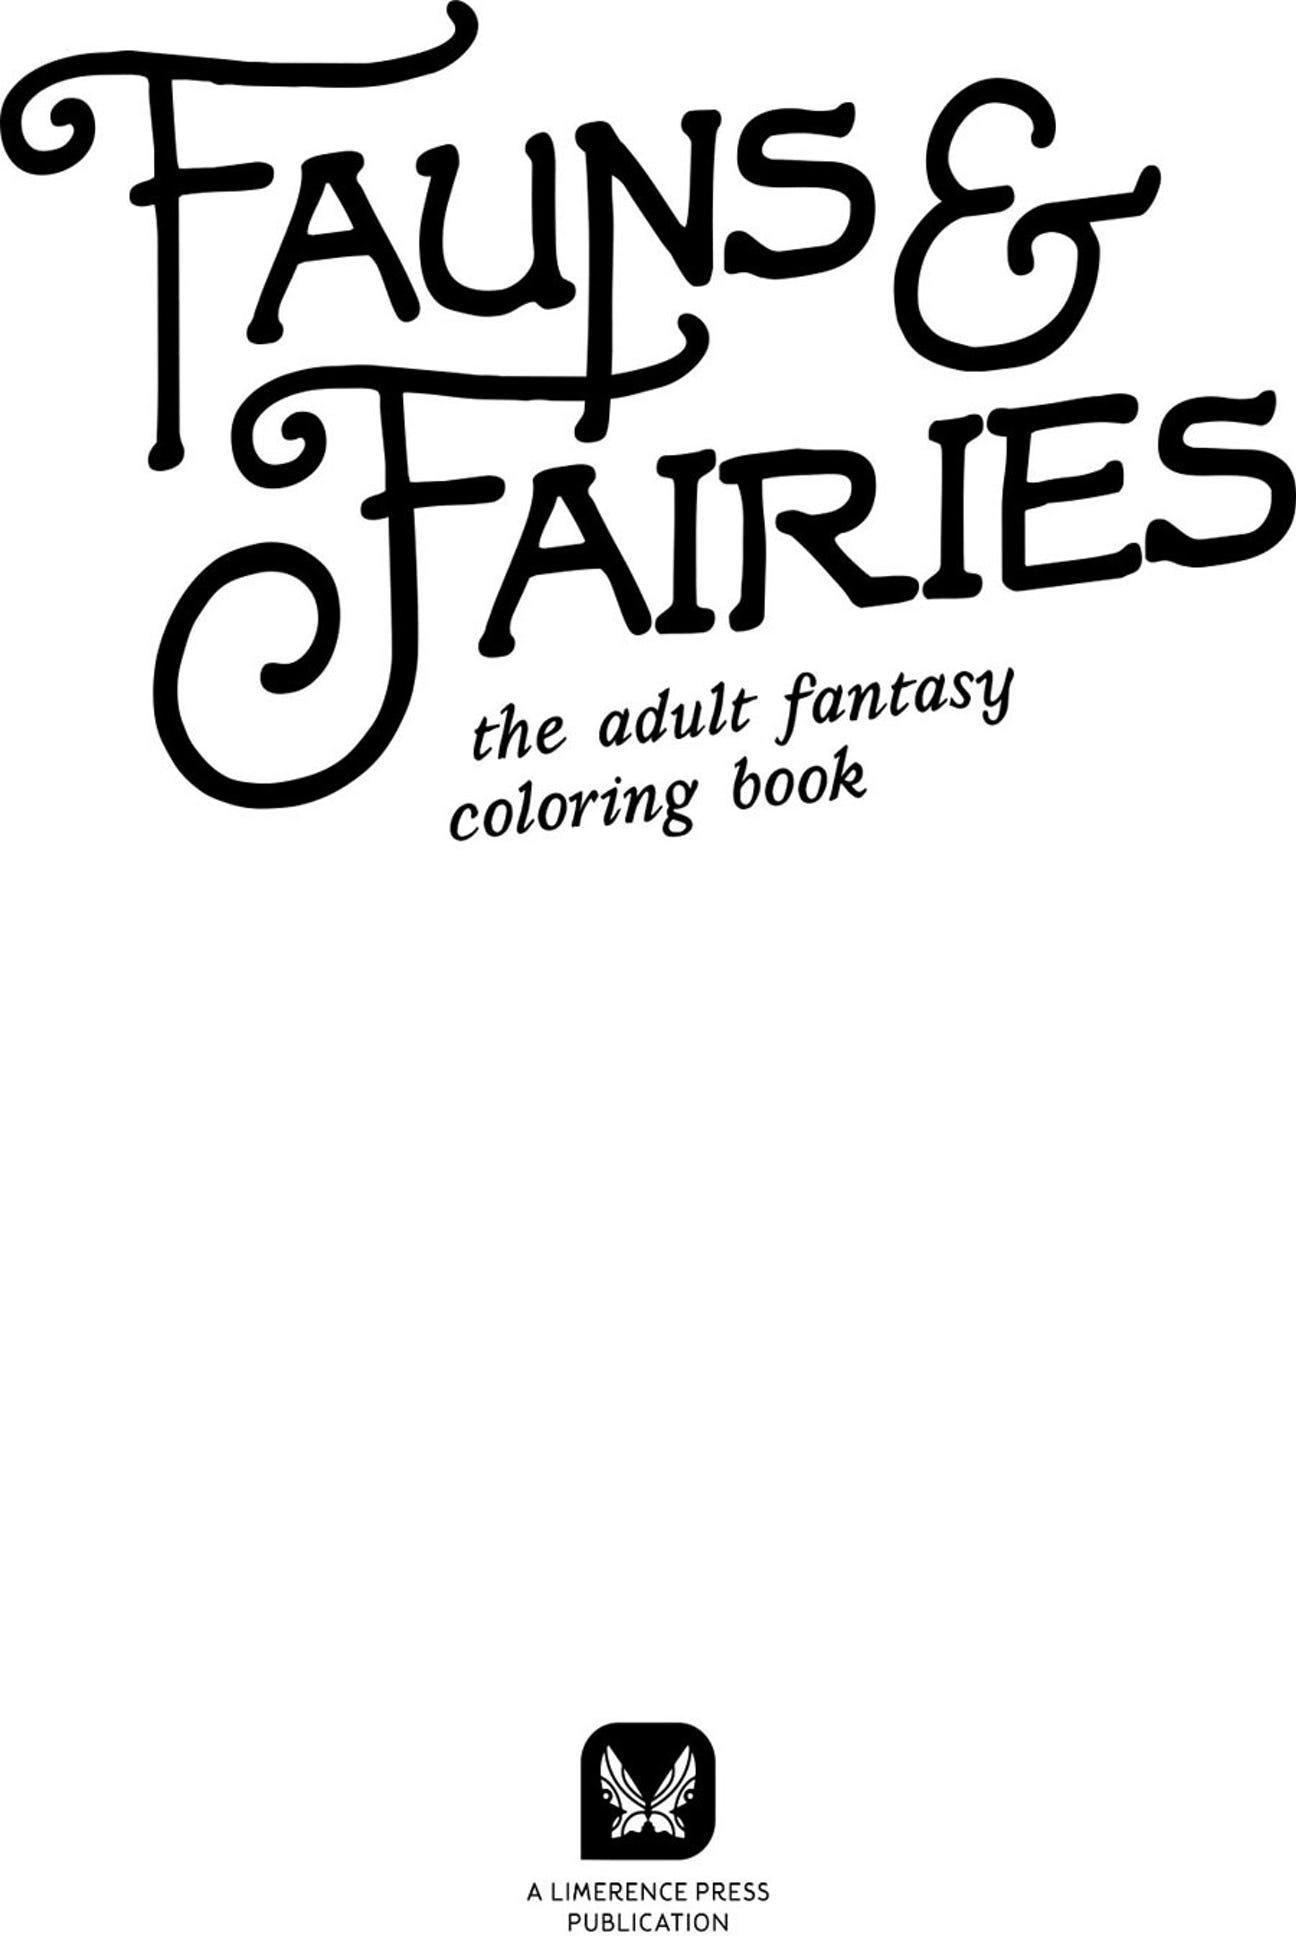 fauns u0026 fairies the fantasy coloring book preview niadd